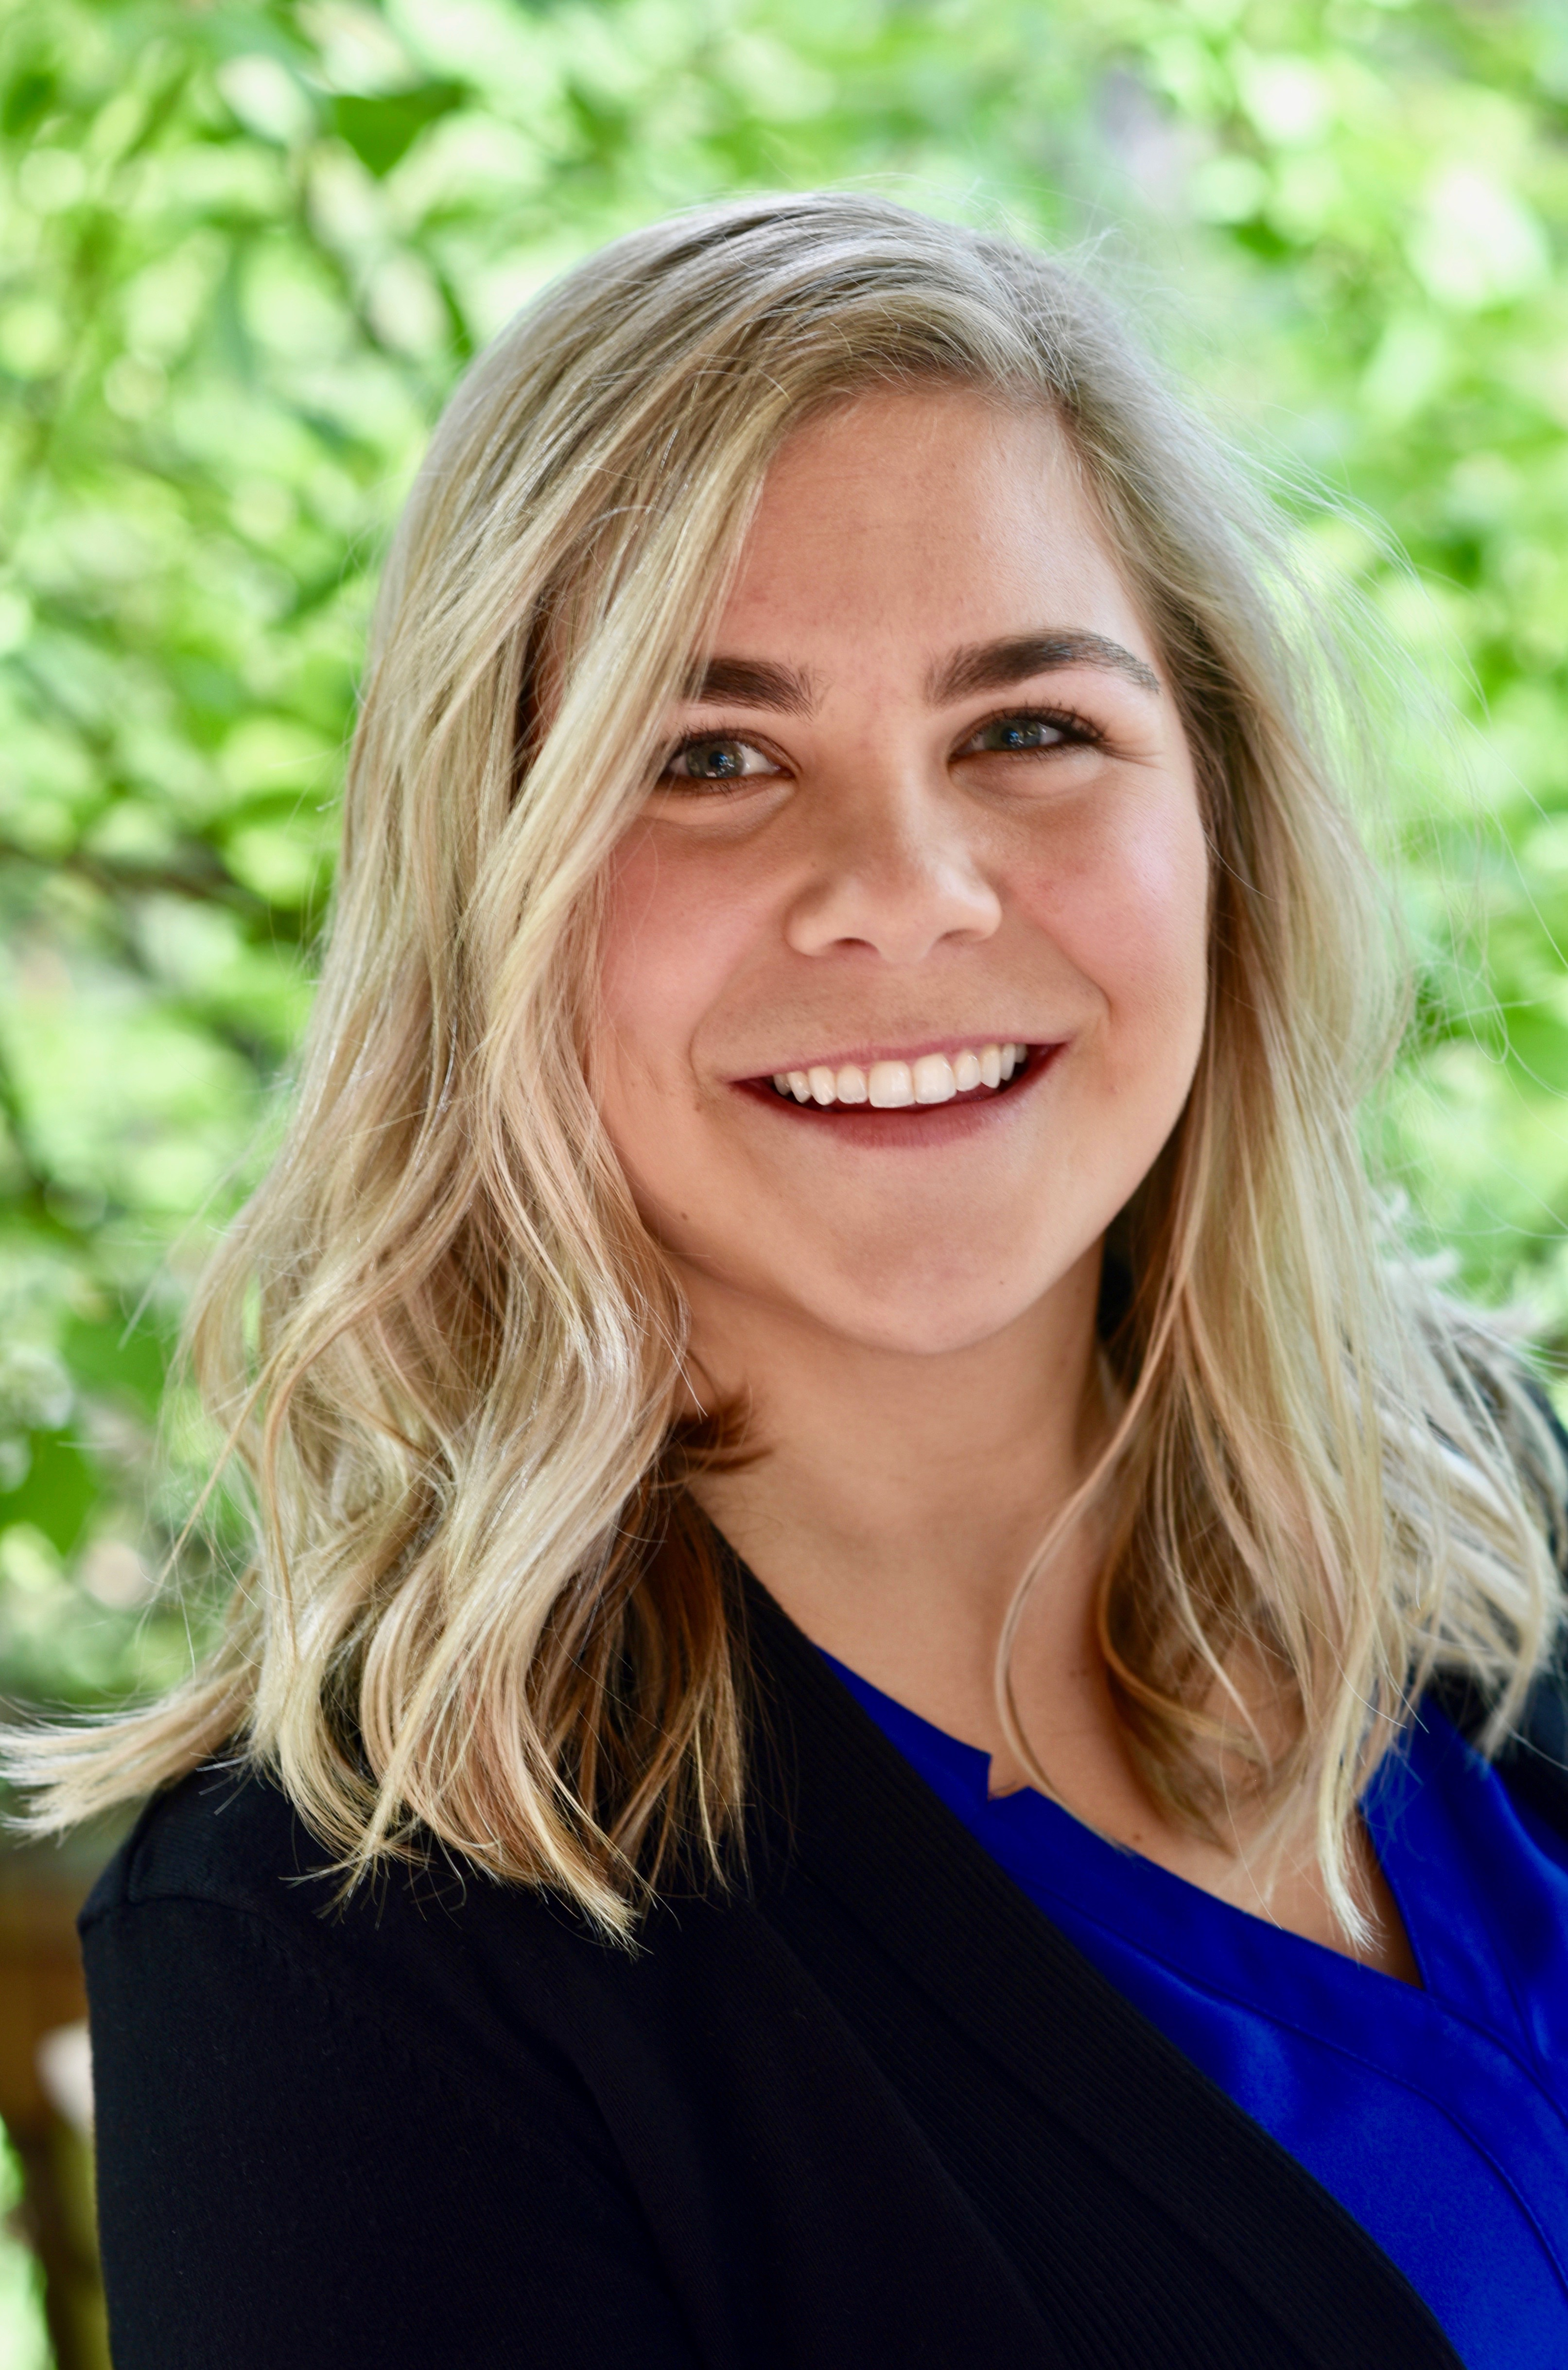 Headshot of Maddie White Registered Dietitian at Nutrition instincts